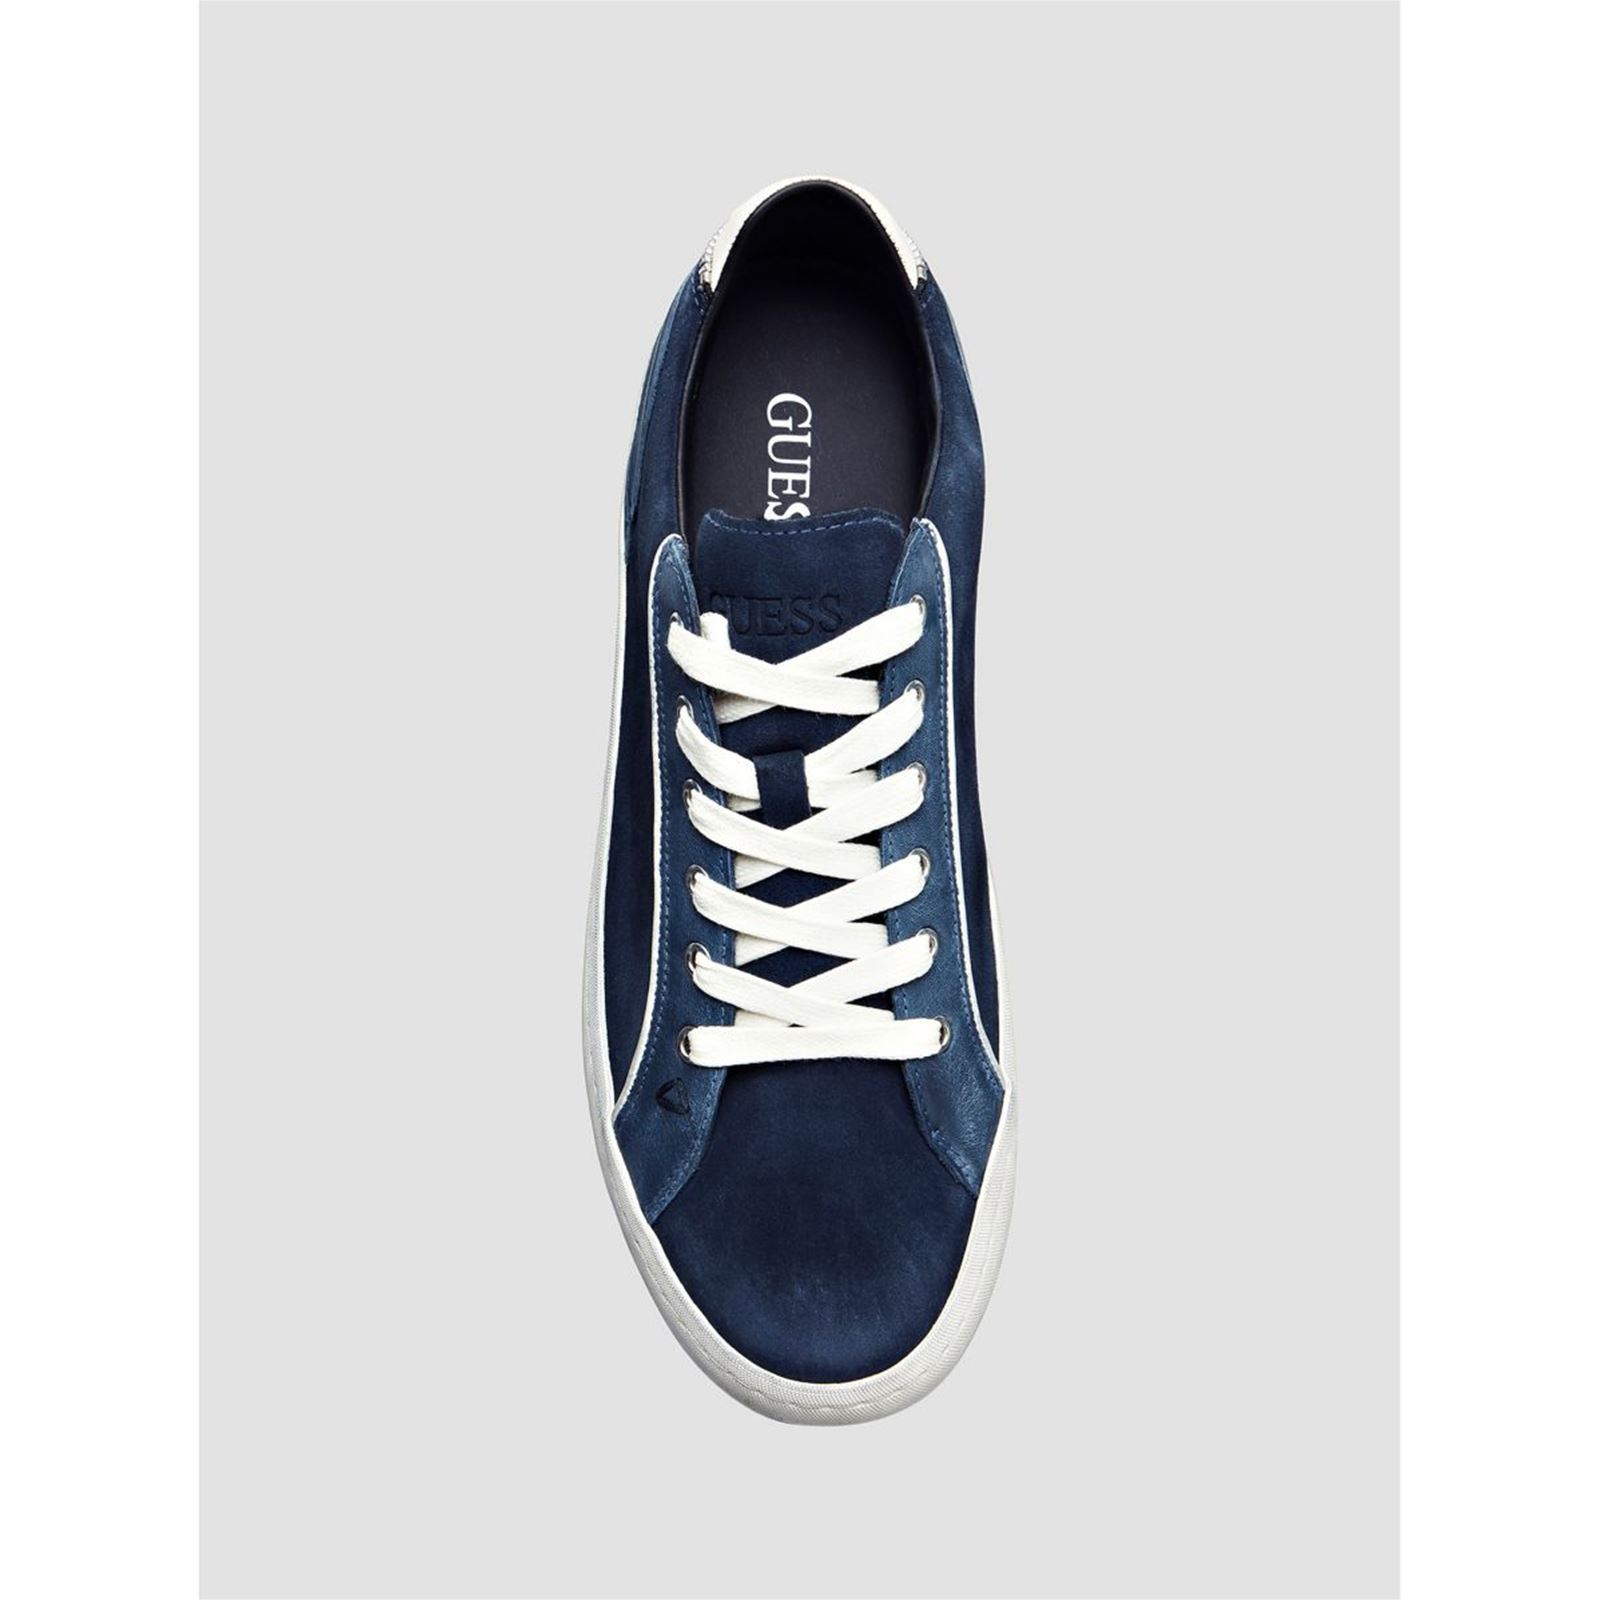 d6379859bddfe Guess Low - Baskets en cuir - bleu   BrandAlley